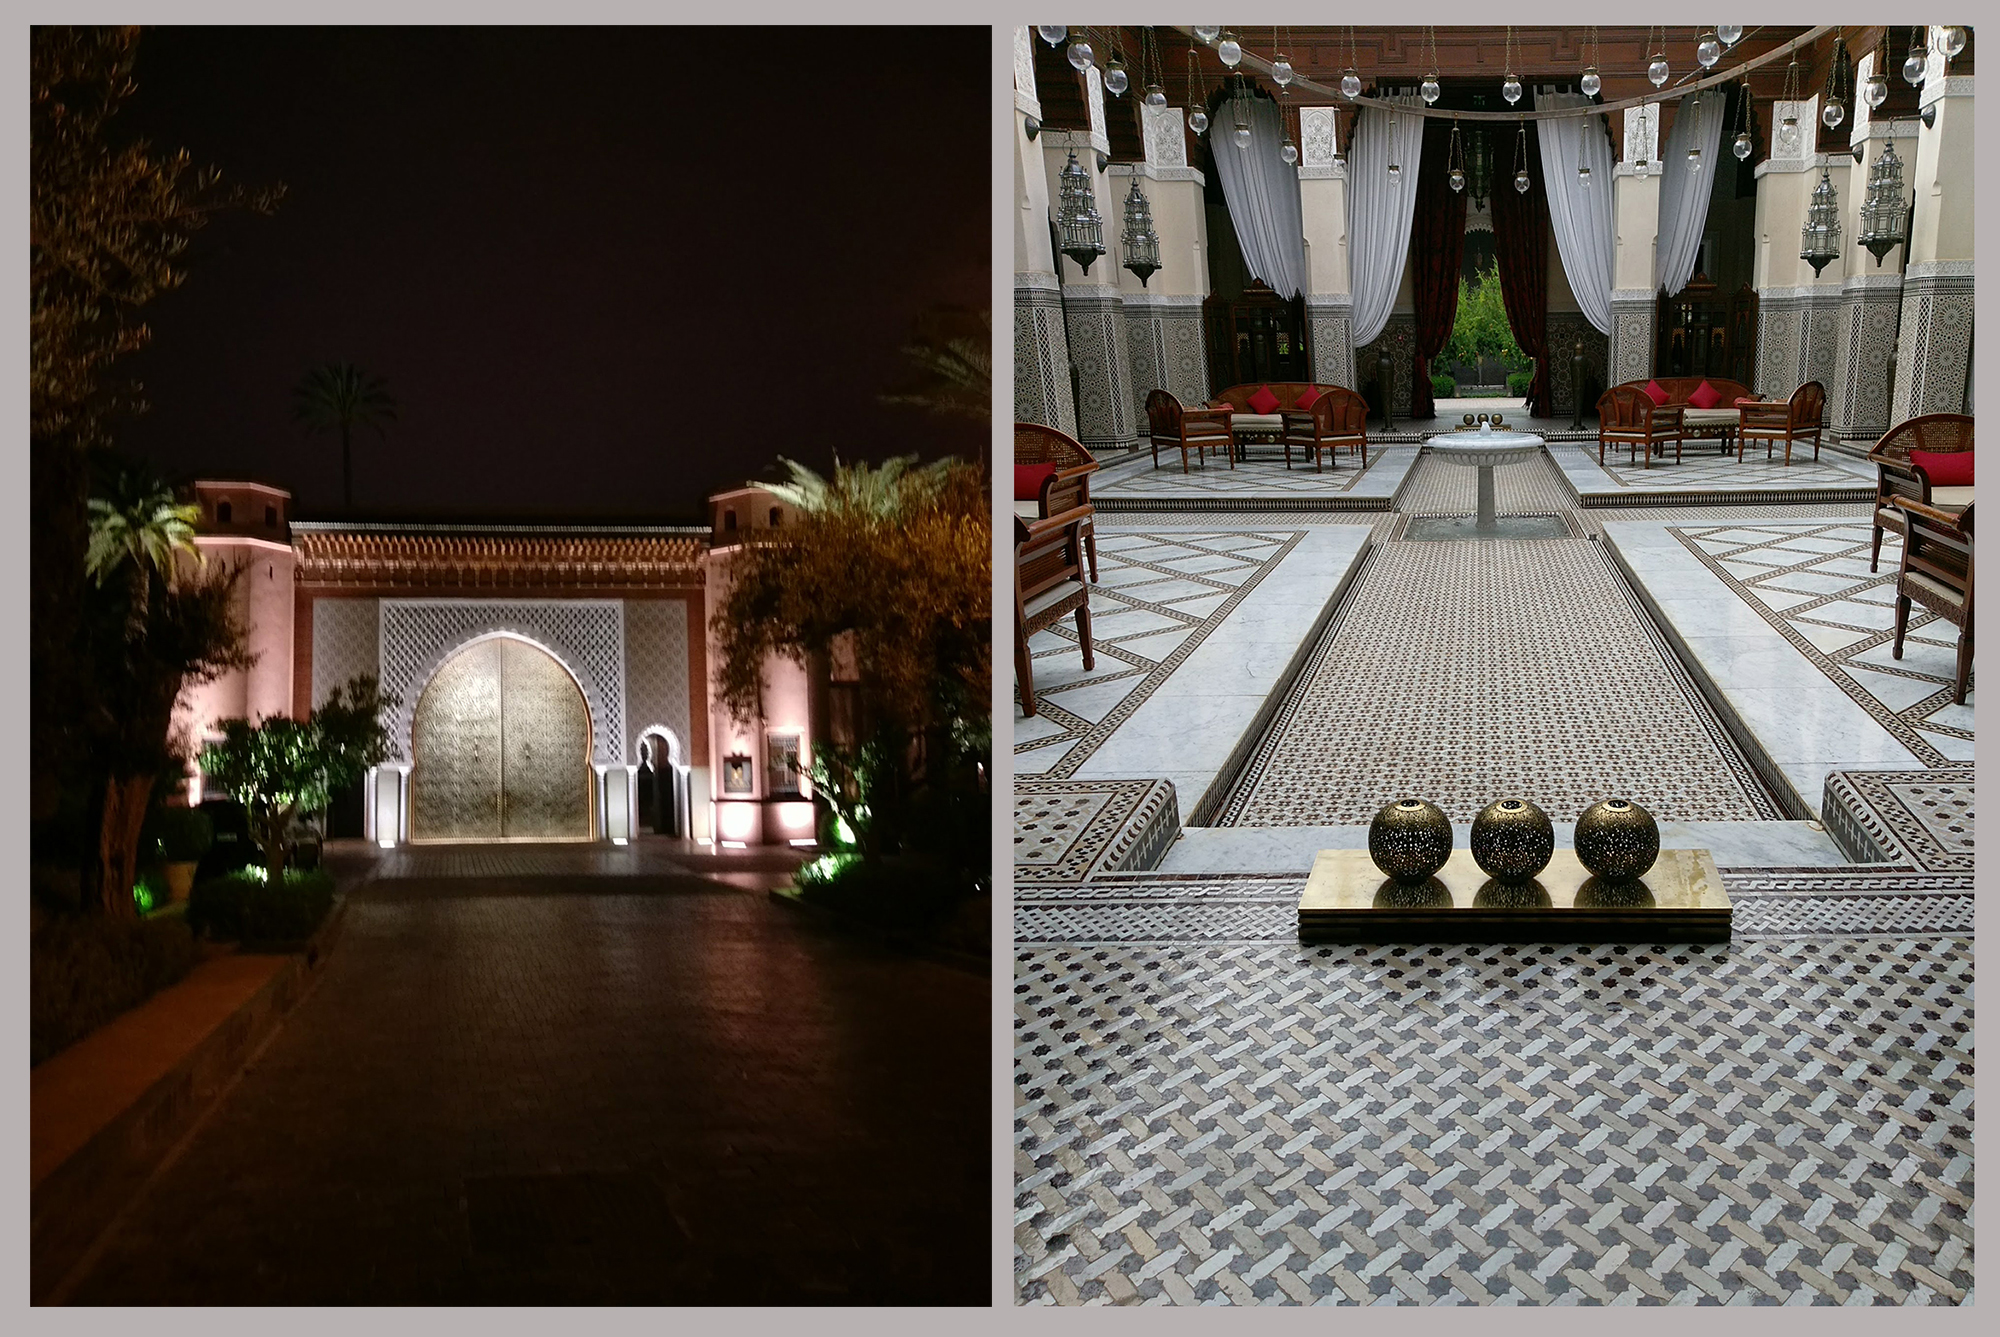 Royal Mansour  : Grand Prix winner of Best Hotel in Africa at Villégiature 2015 and 2018 editions